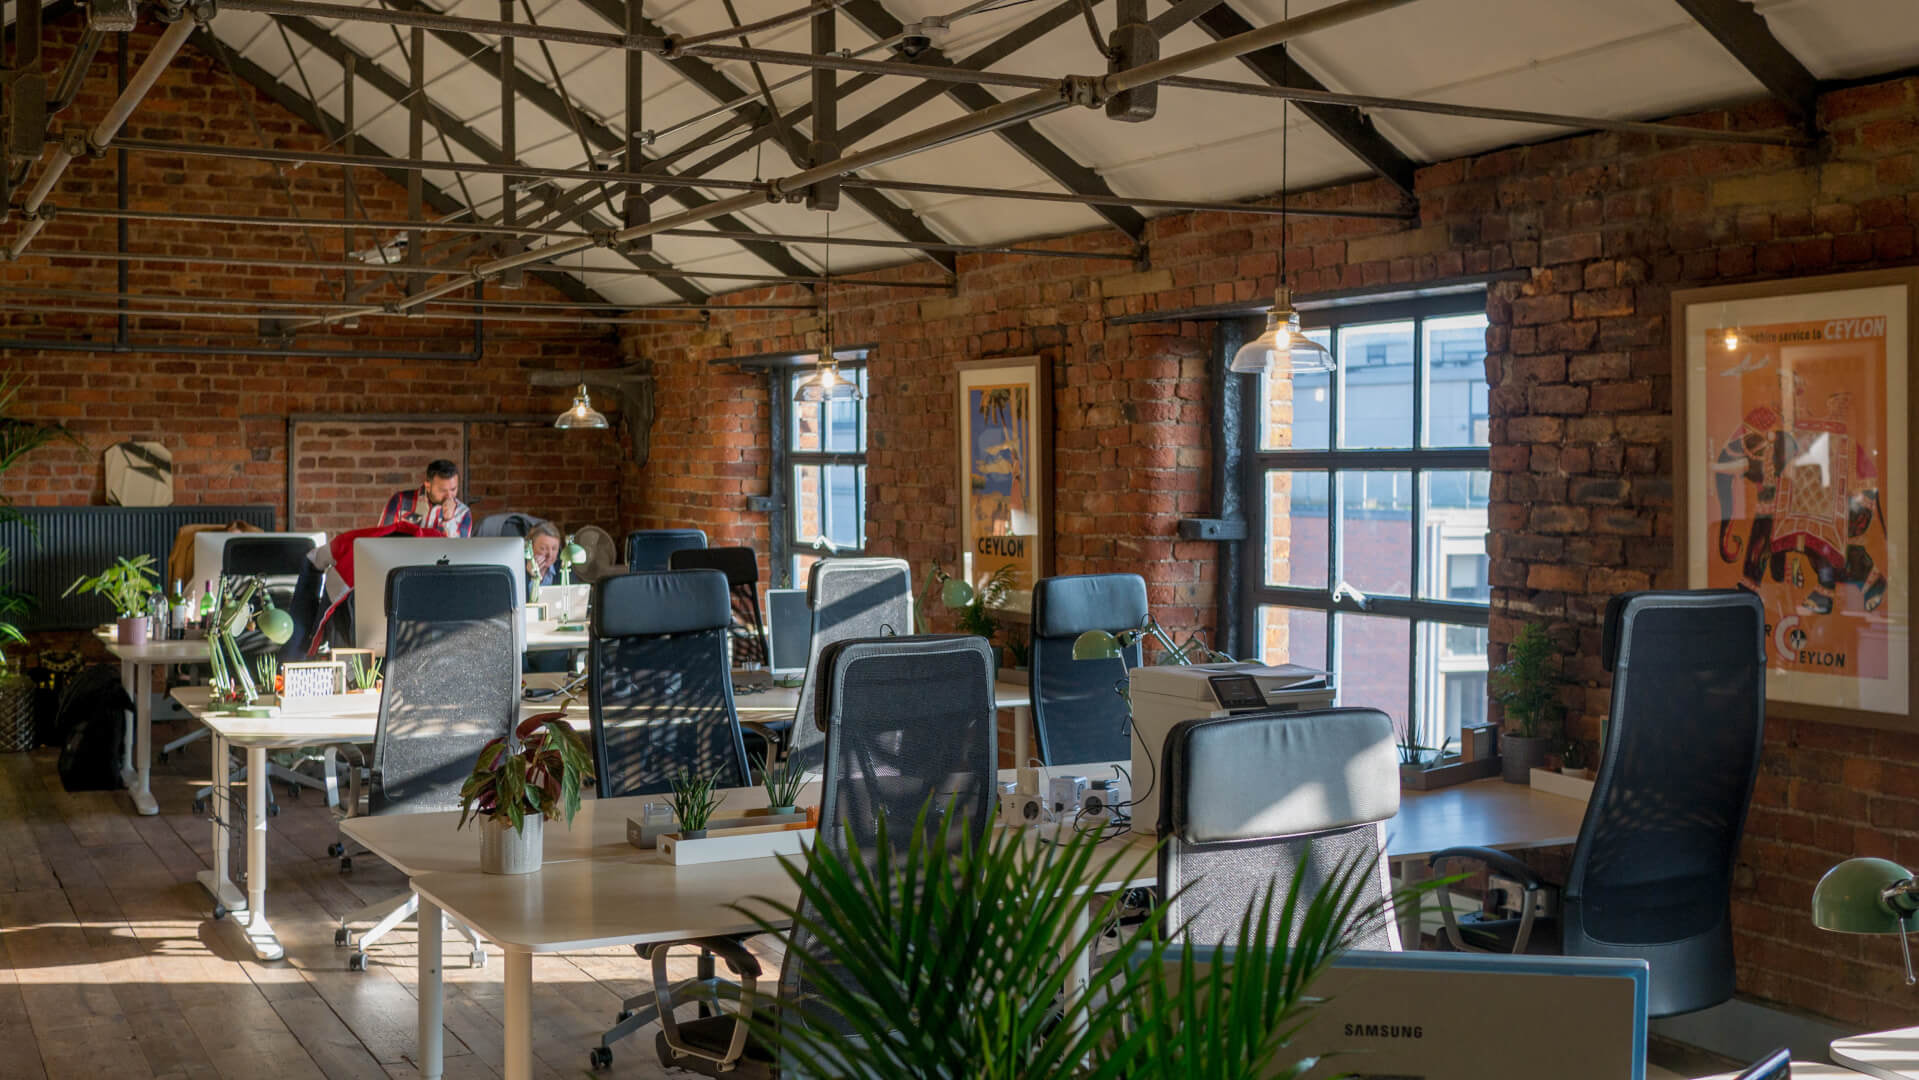 Beehive Lofts Manchester